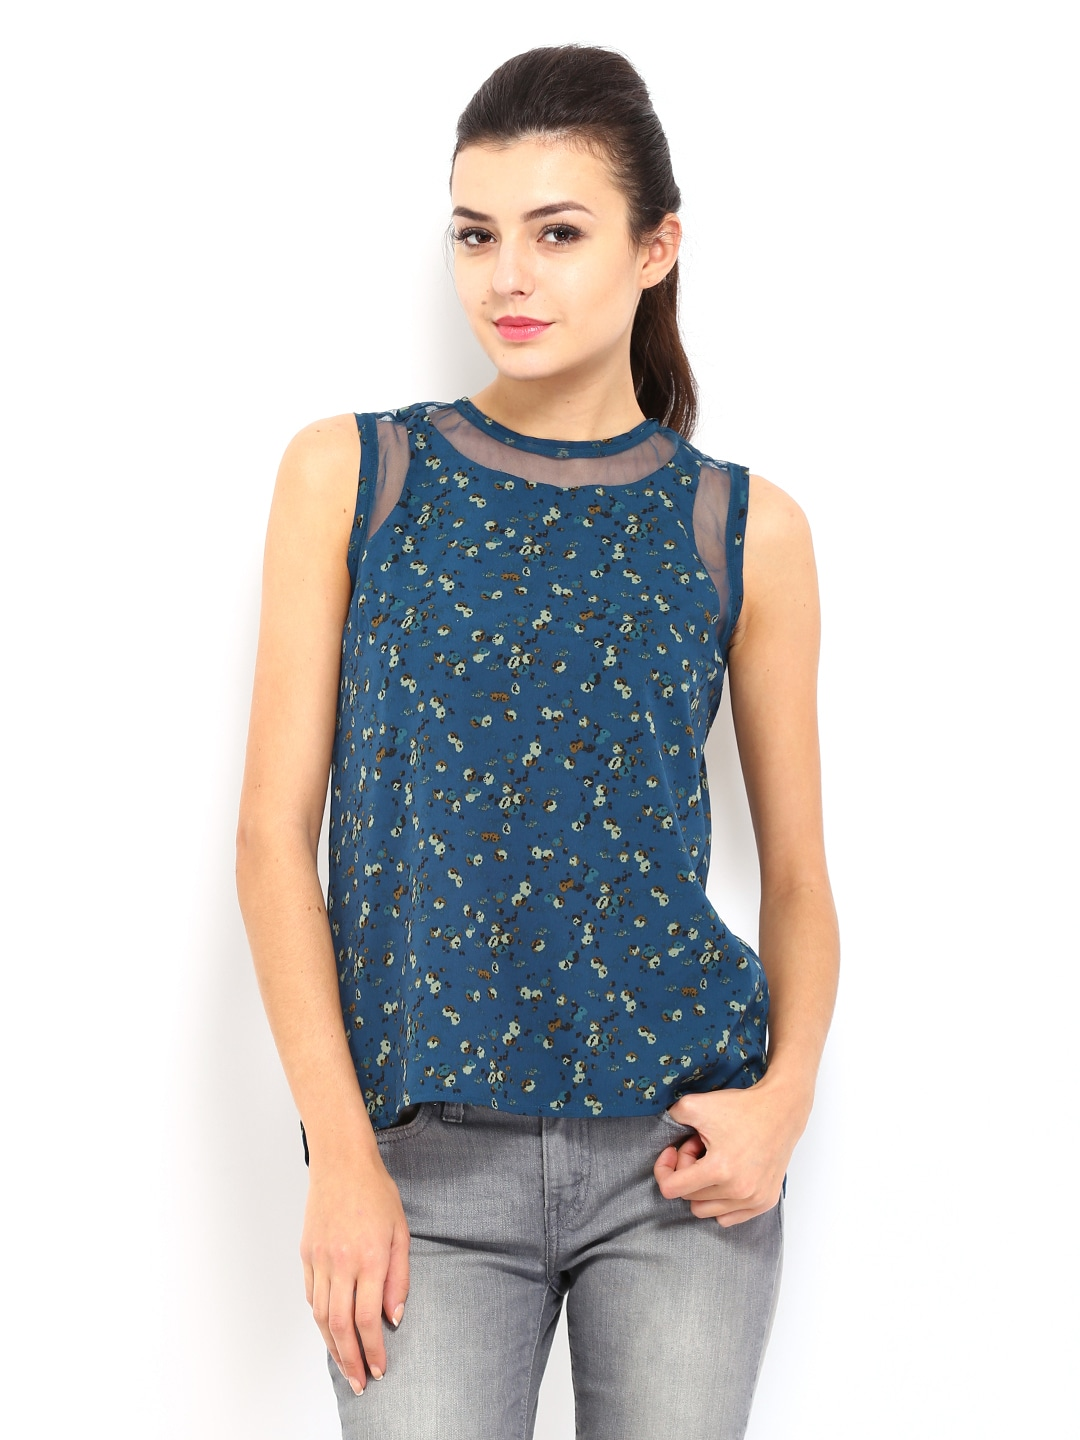 Allen Solly Woman Teal Blue Printed Top